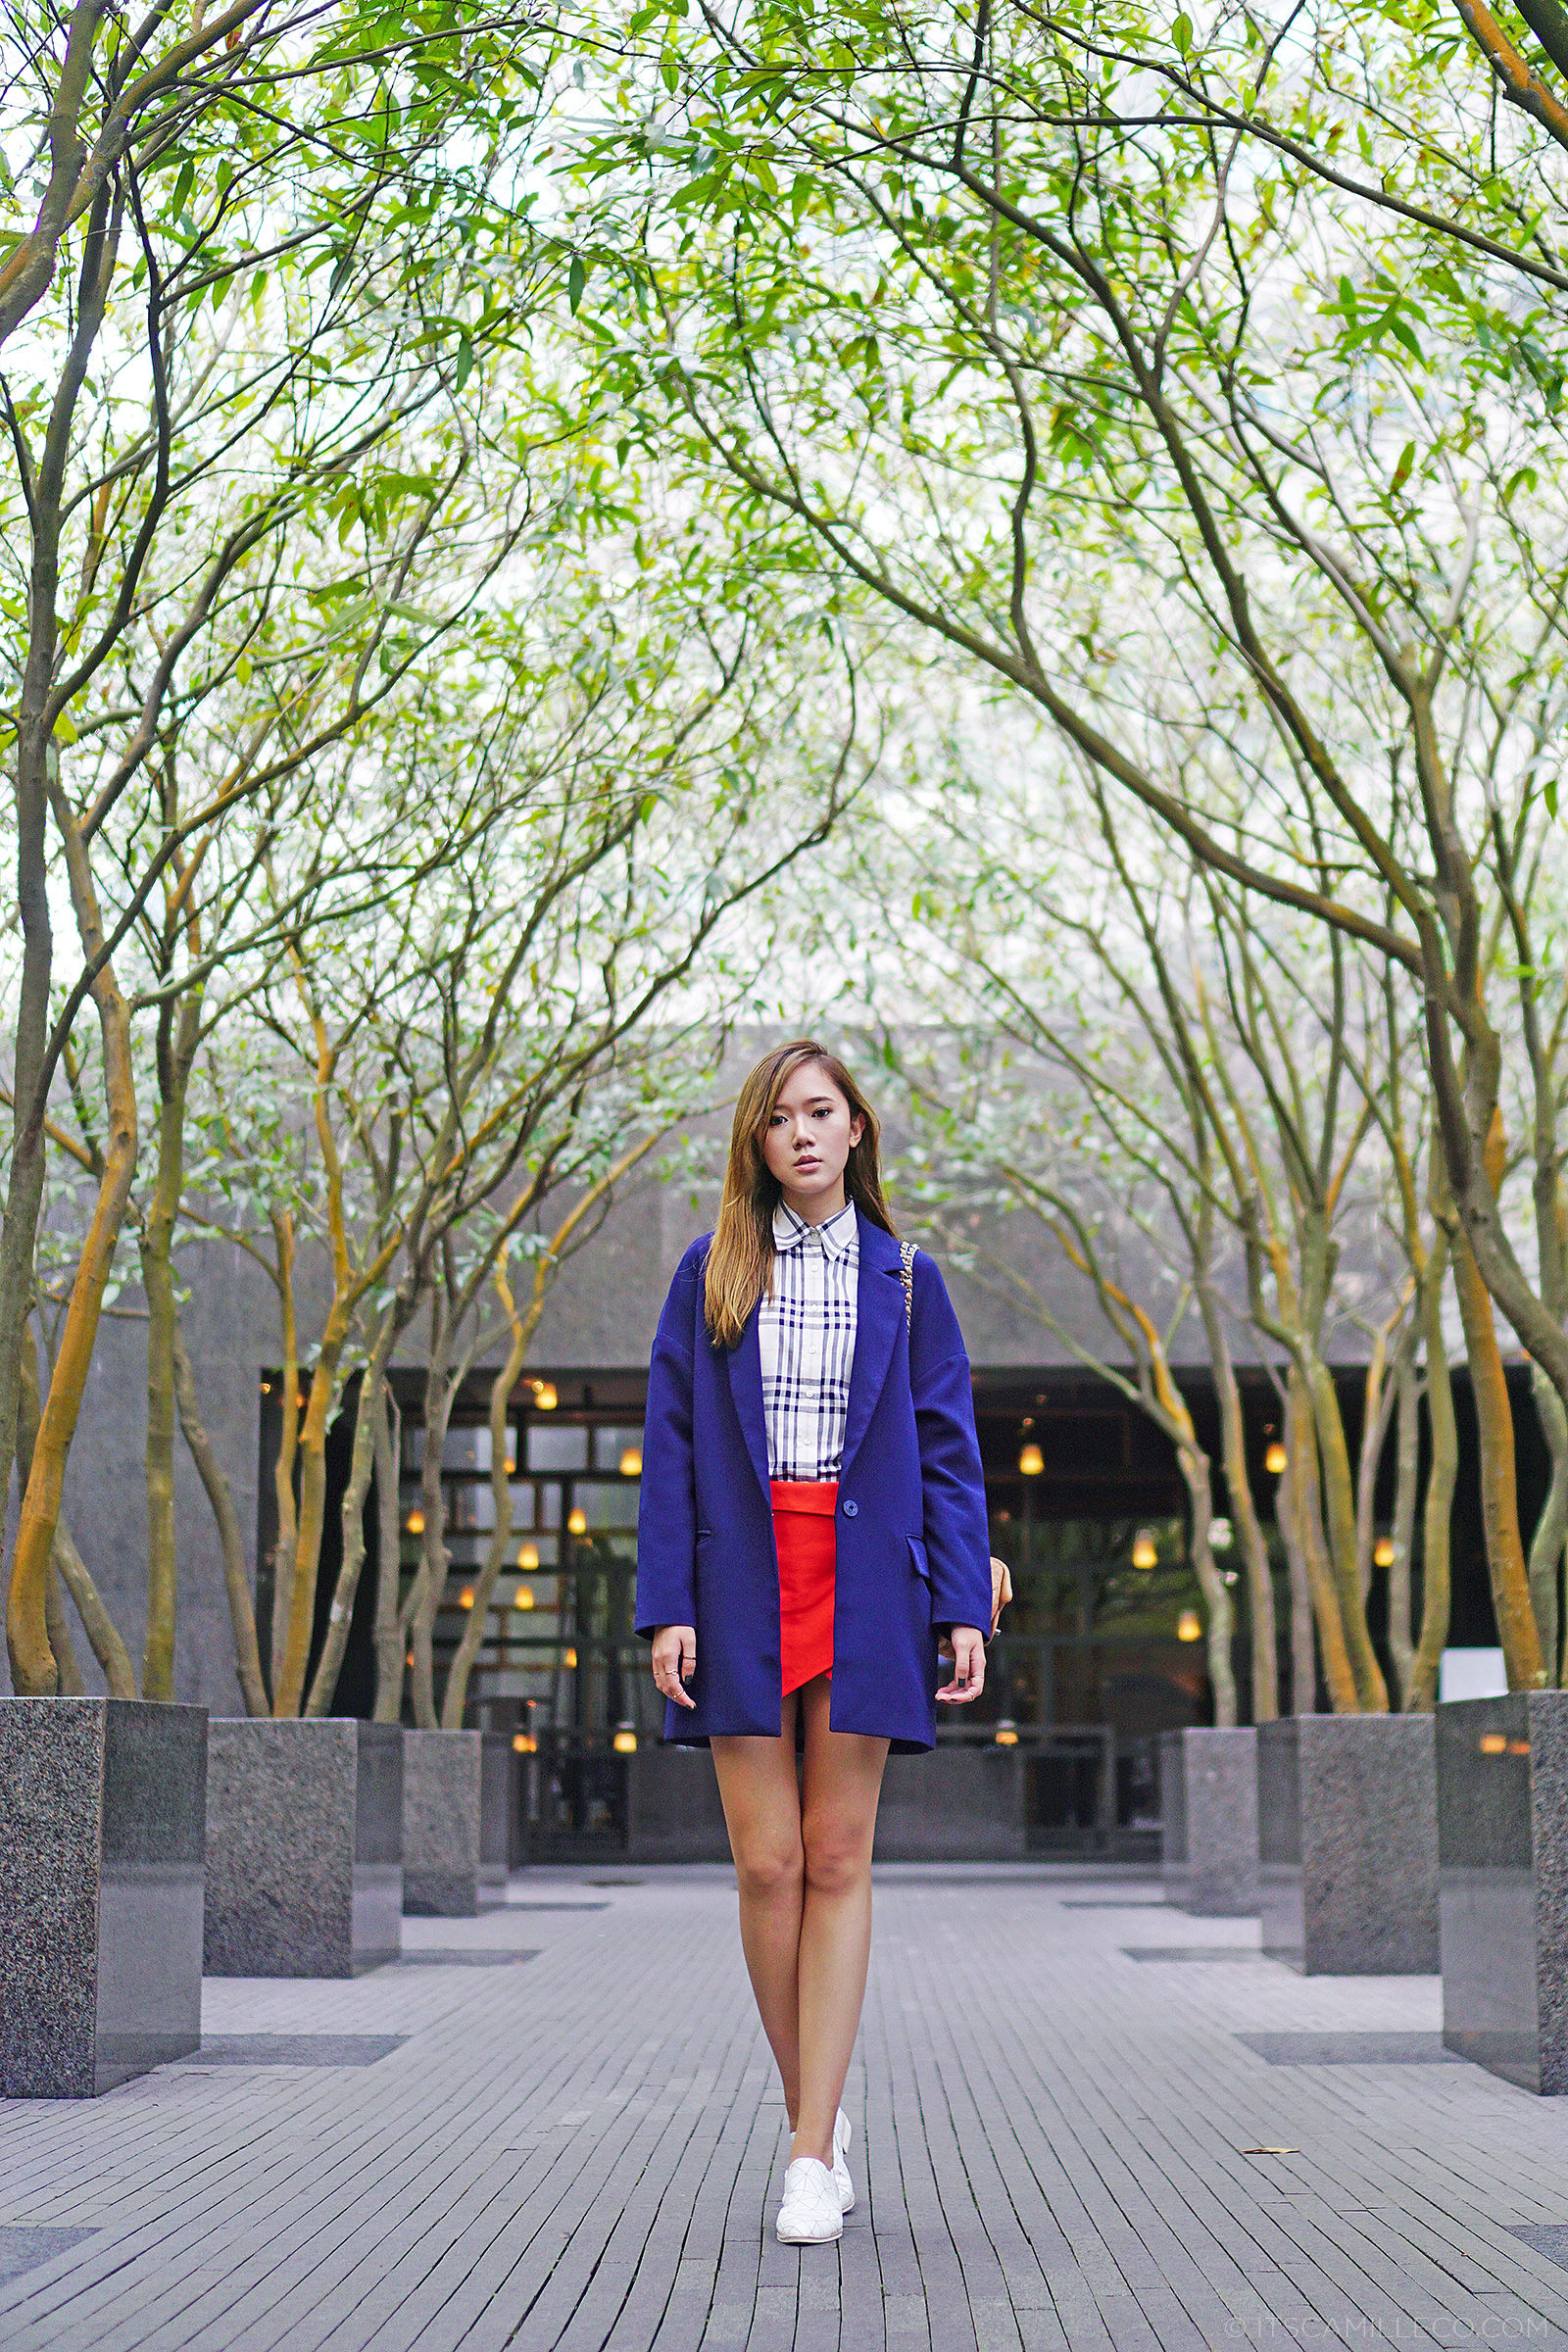 Preppy Fashion Featuring Chanel Backpack, Front Row Shop Blazer, Burberry and more | Camille Co